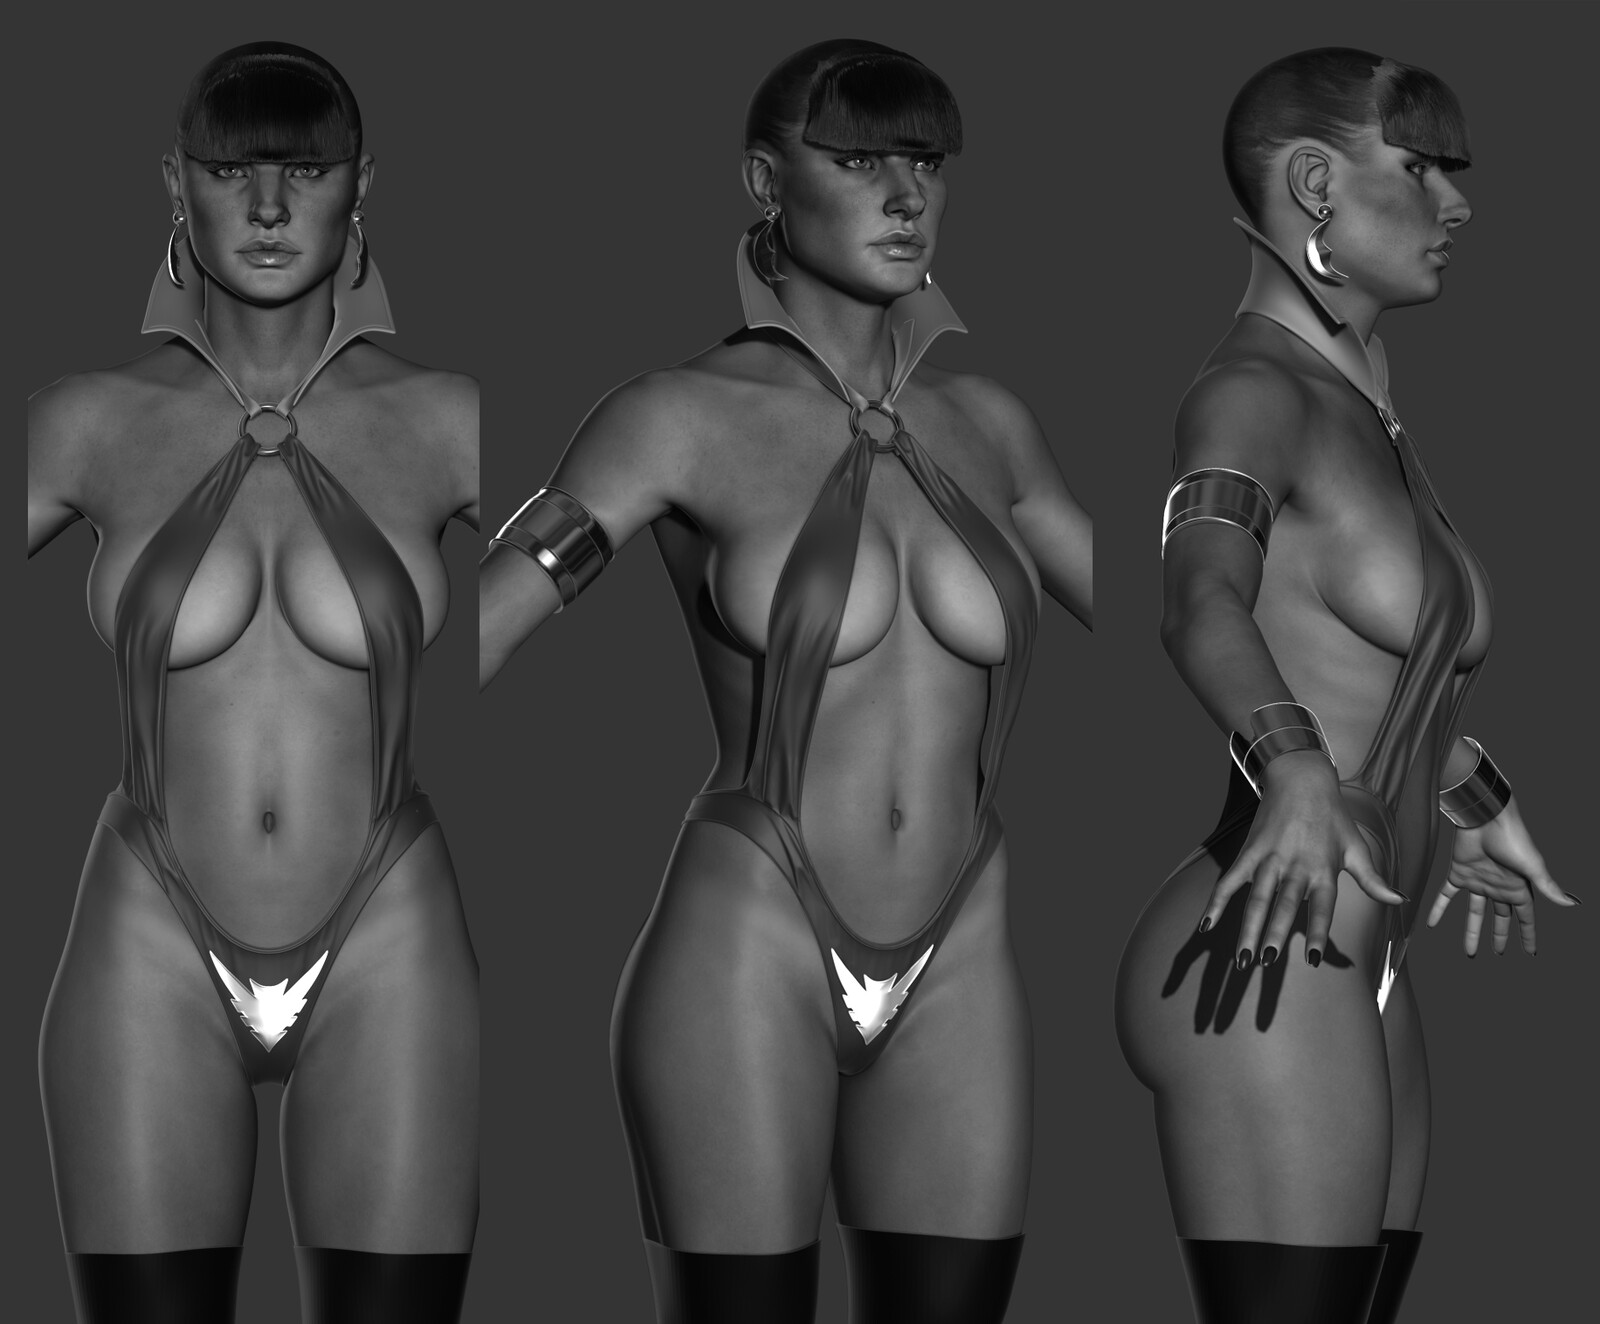 updated physique and face, will re-pose body differently so stay tuned.